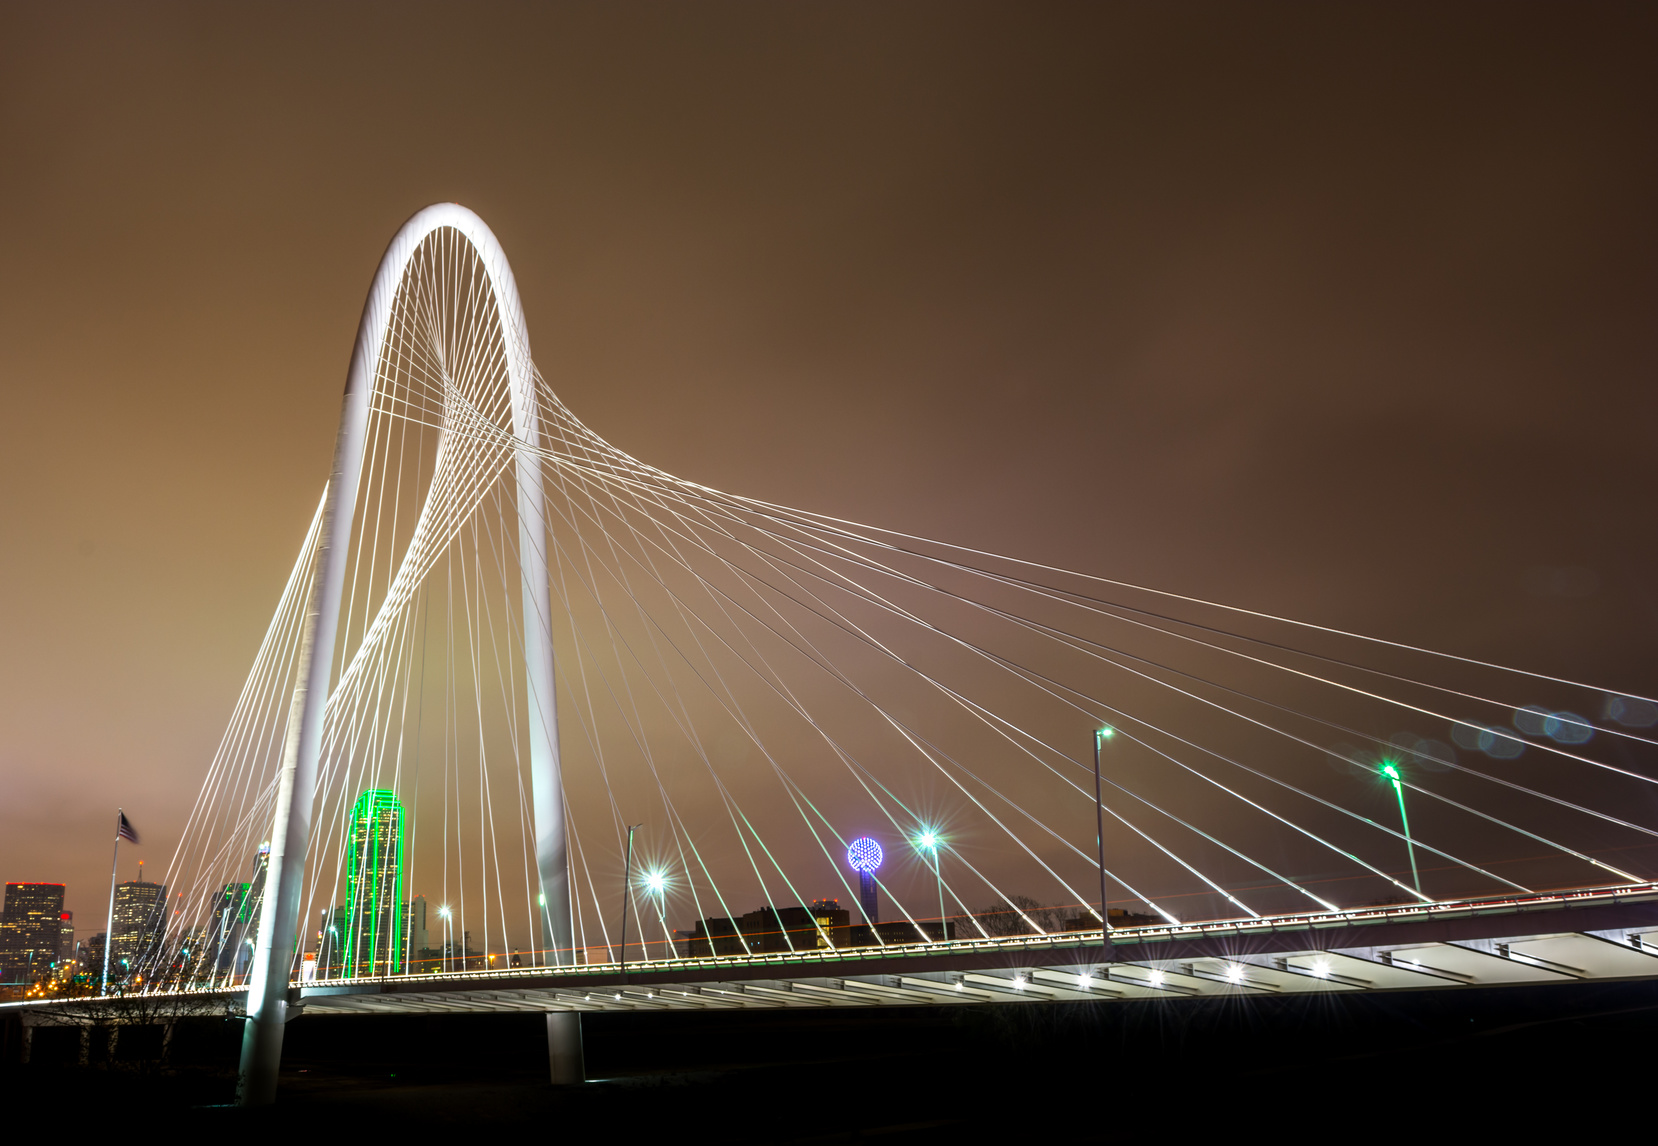 Wide view of a bridge at night in downtown Dallas with light streaks from the cars